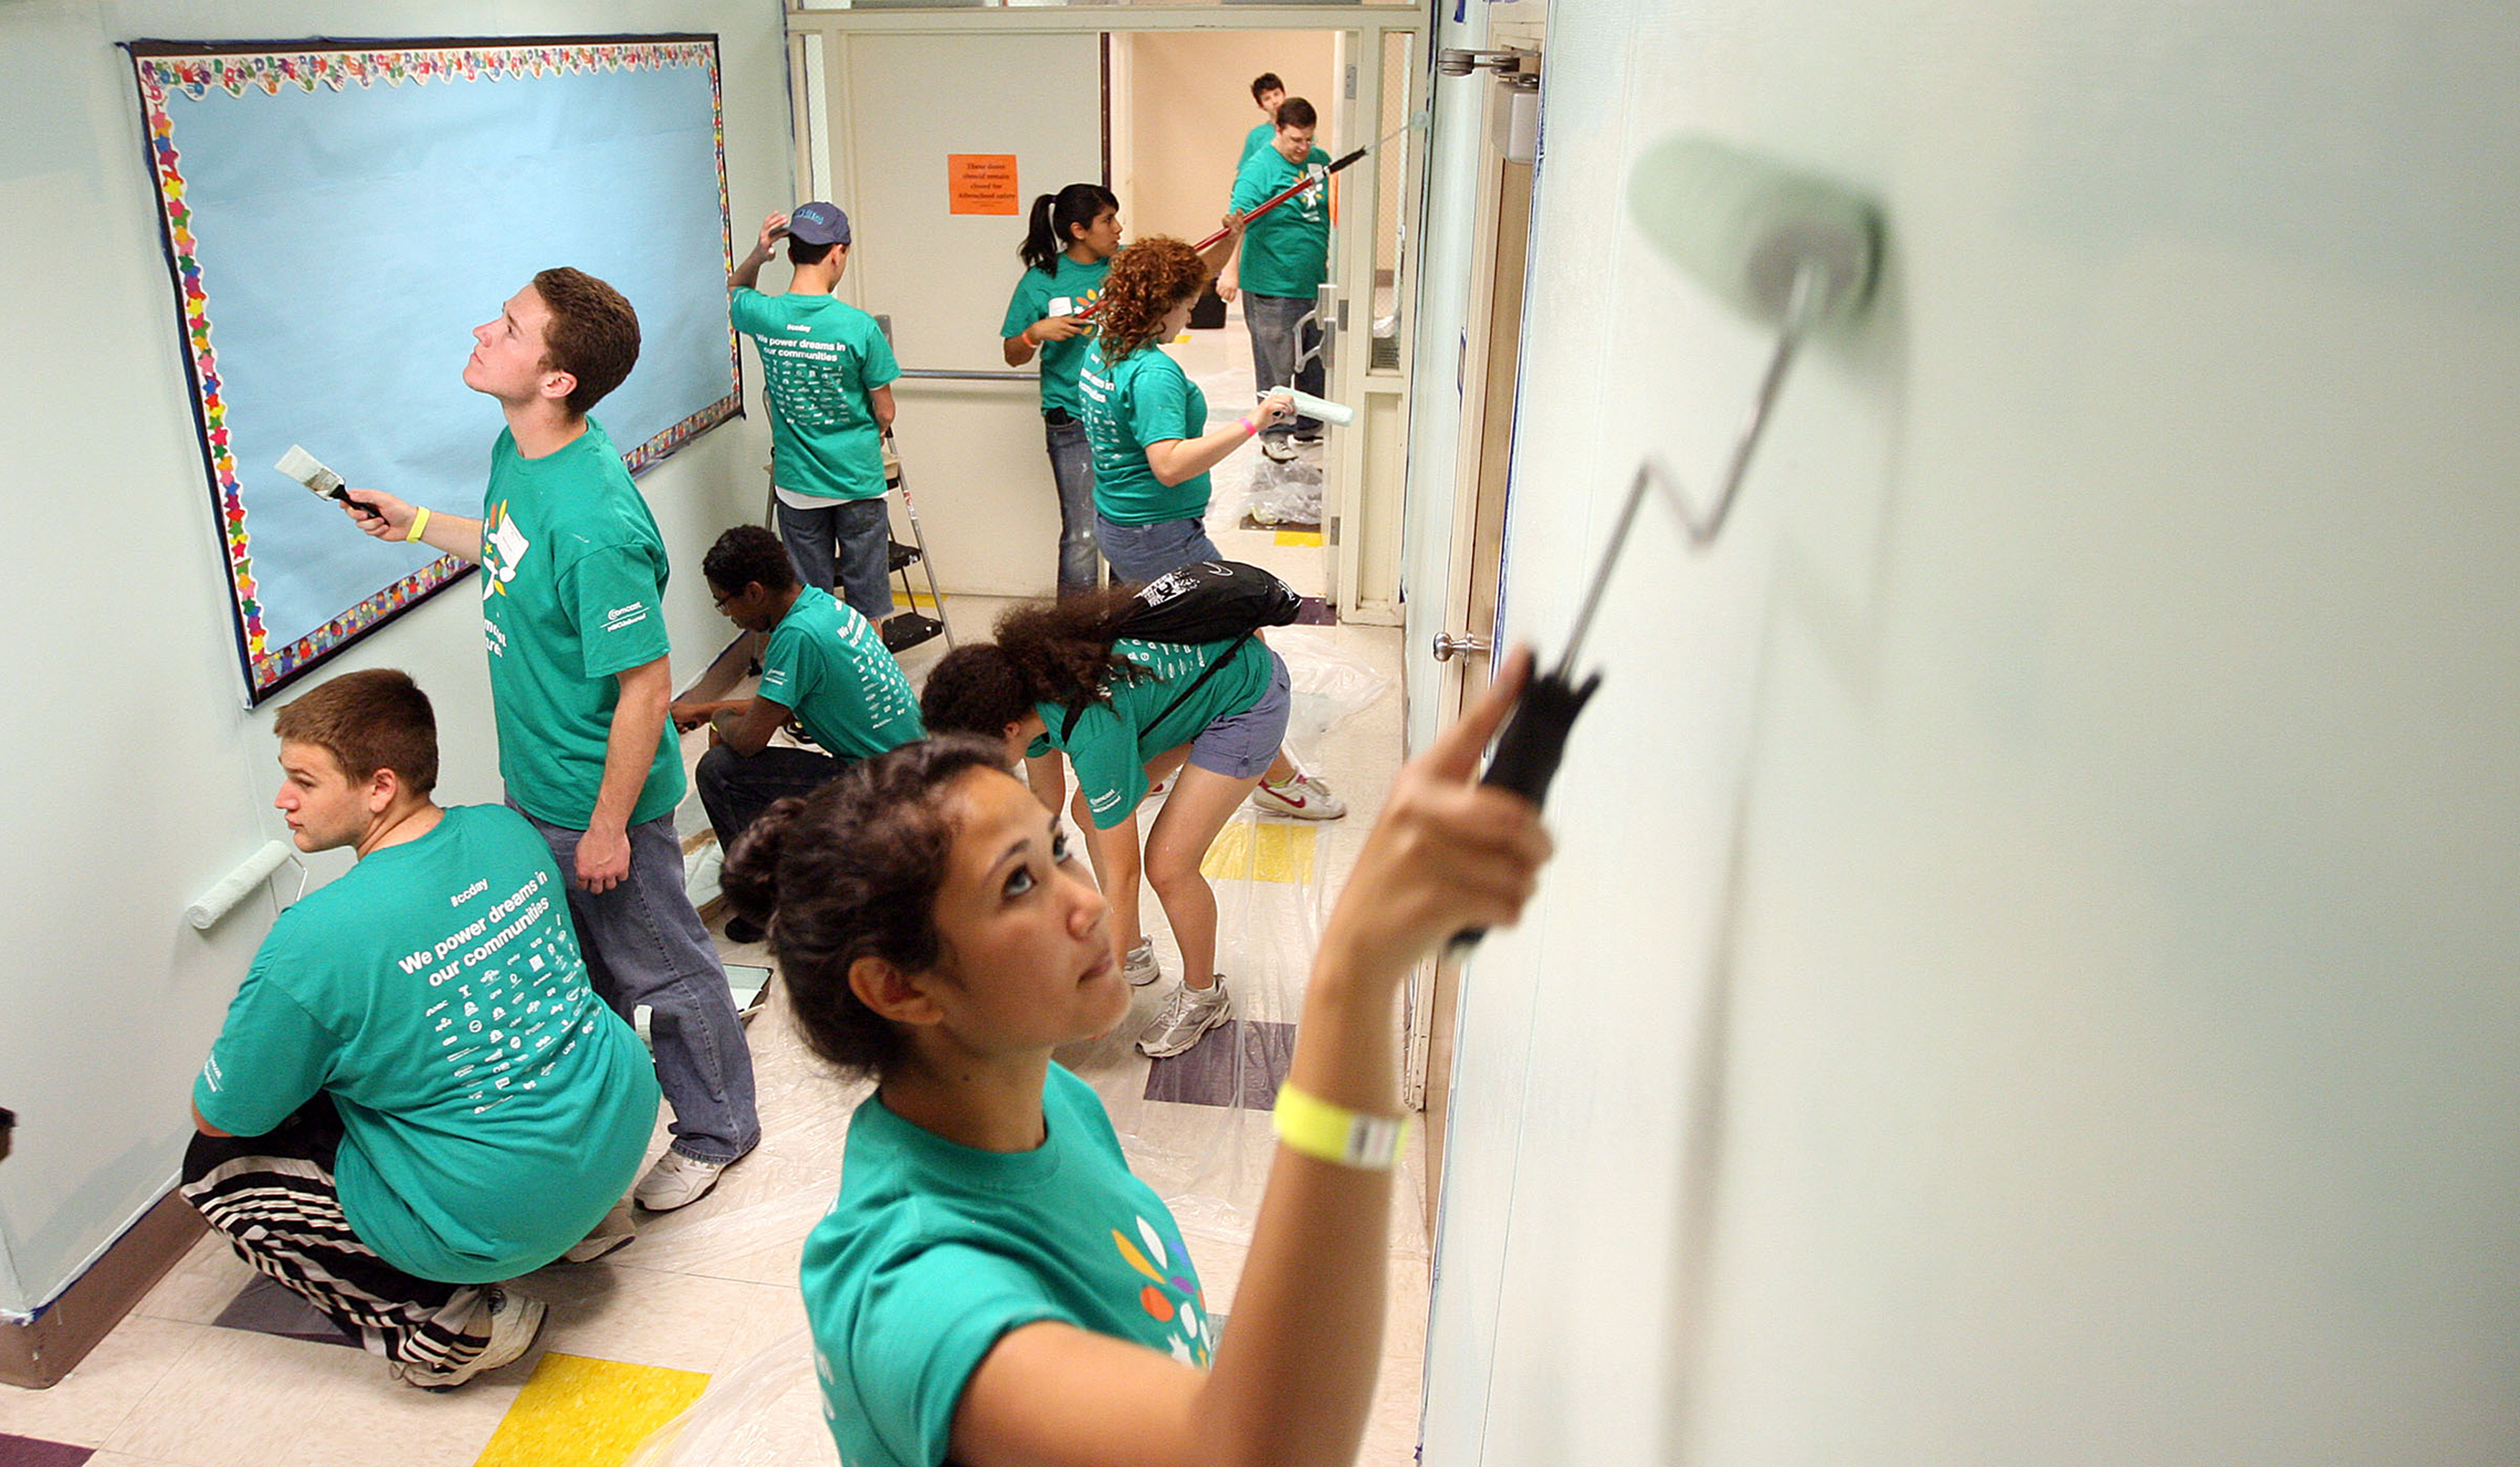 Comcast NBC Universal is making change happen through its Comcast Cares Day